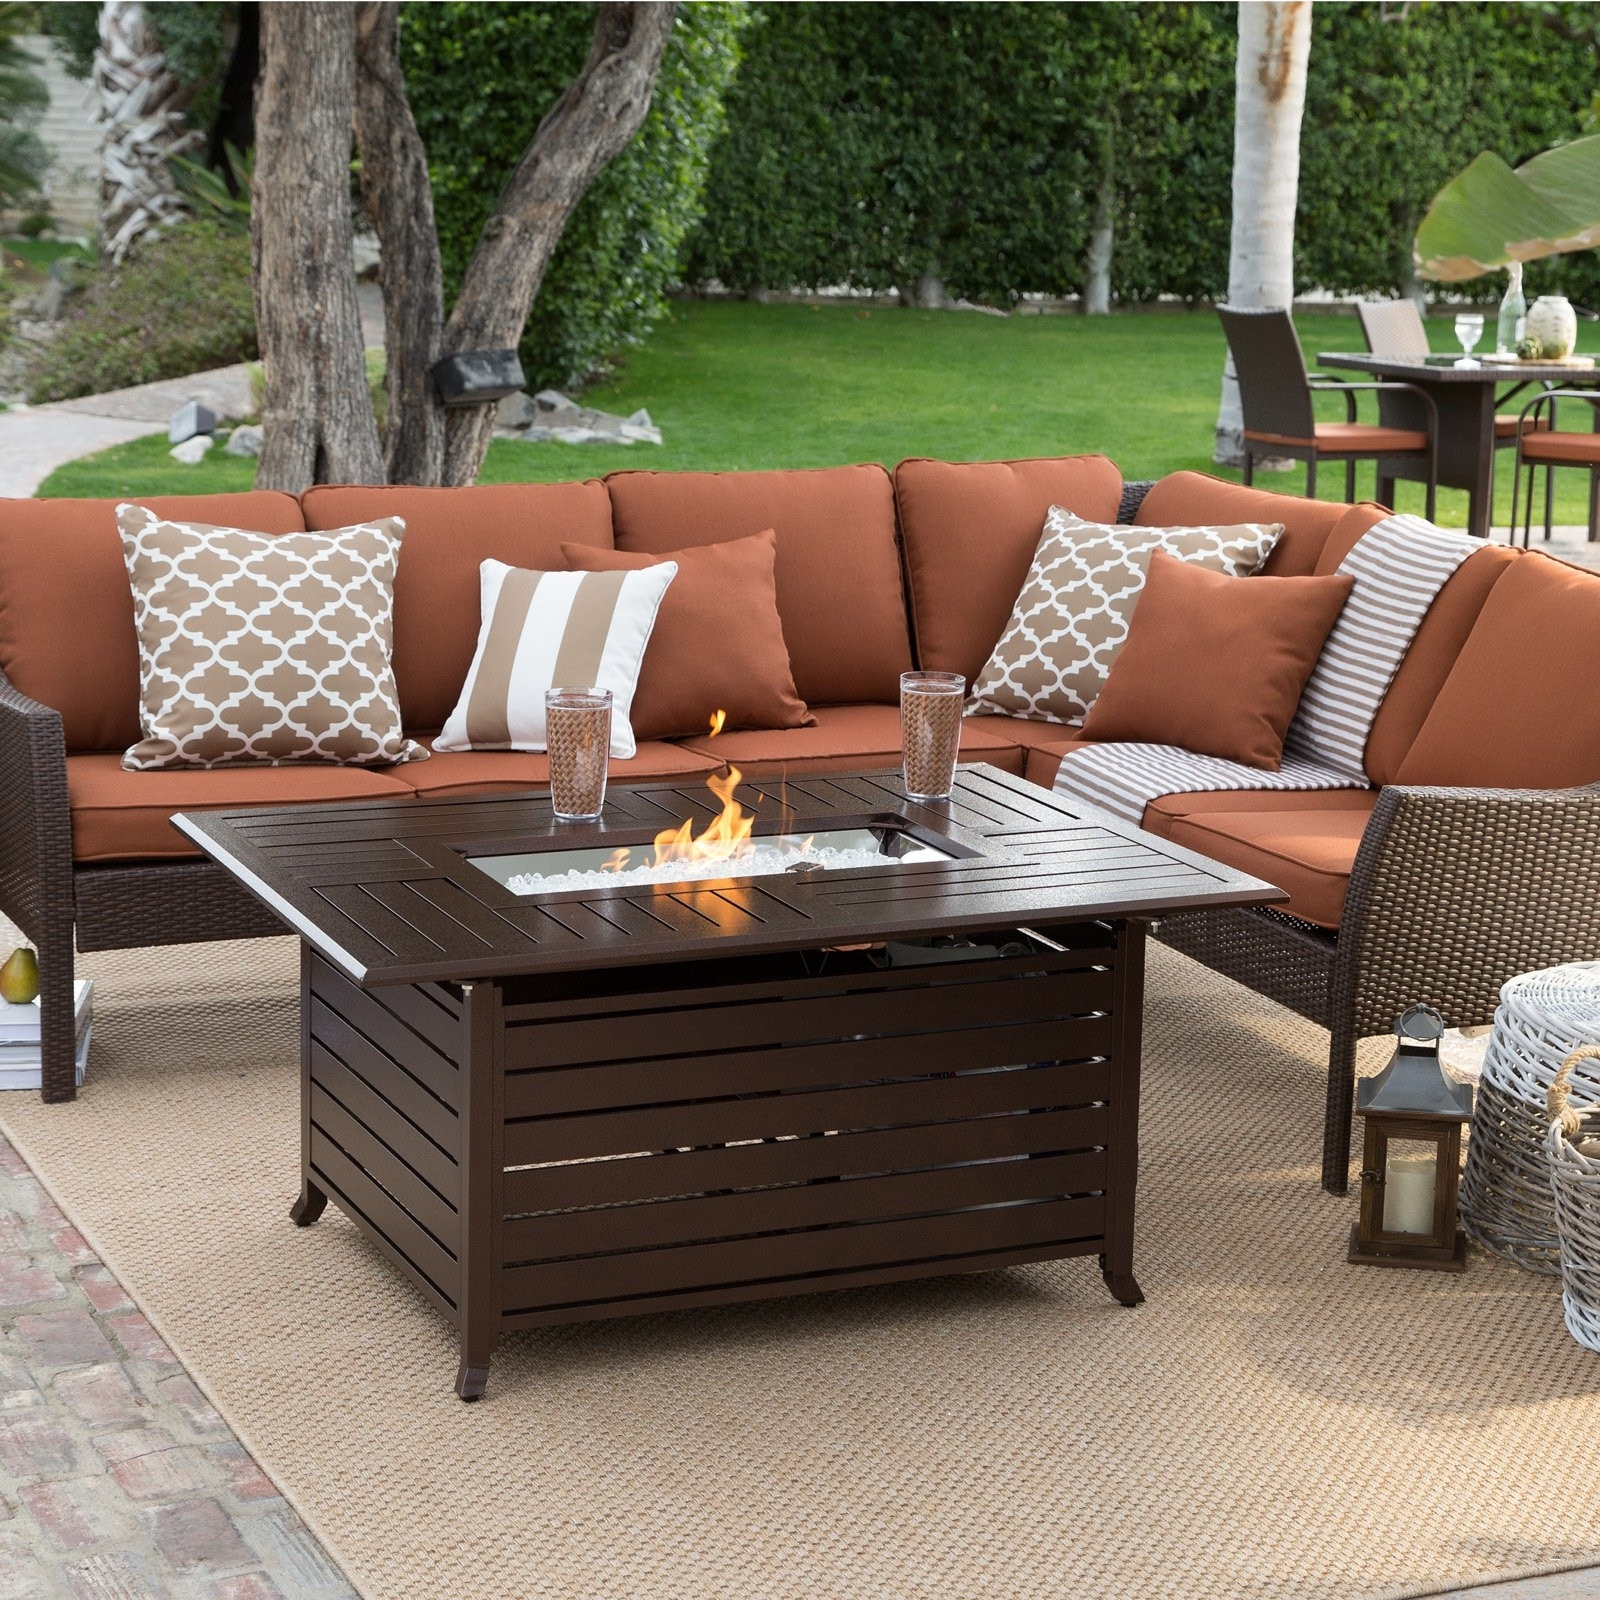 Patio Conversation Sets With Gas Fire Pit Throughout Fashionable Fireplace Tables Outdoor Unique Patio Conversation Sets With Fire (View 18 of 20)